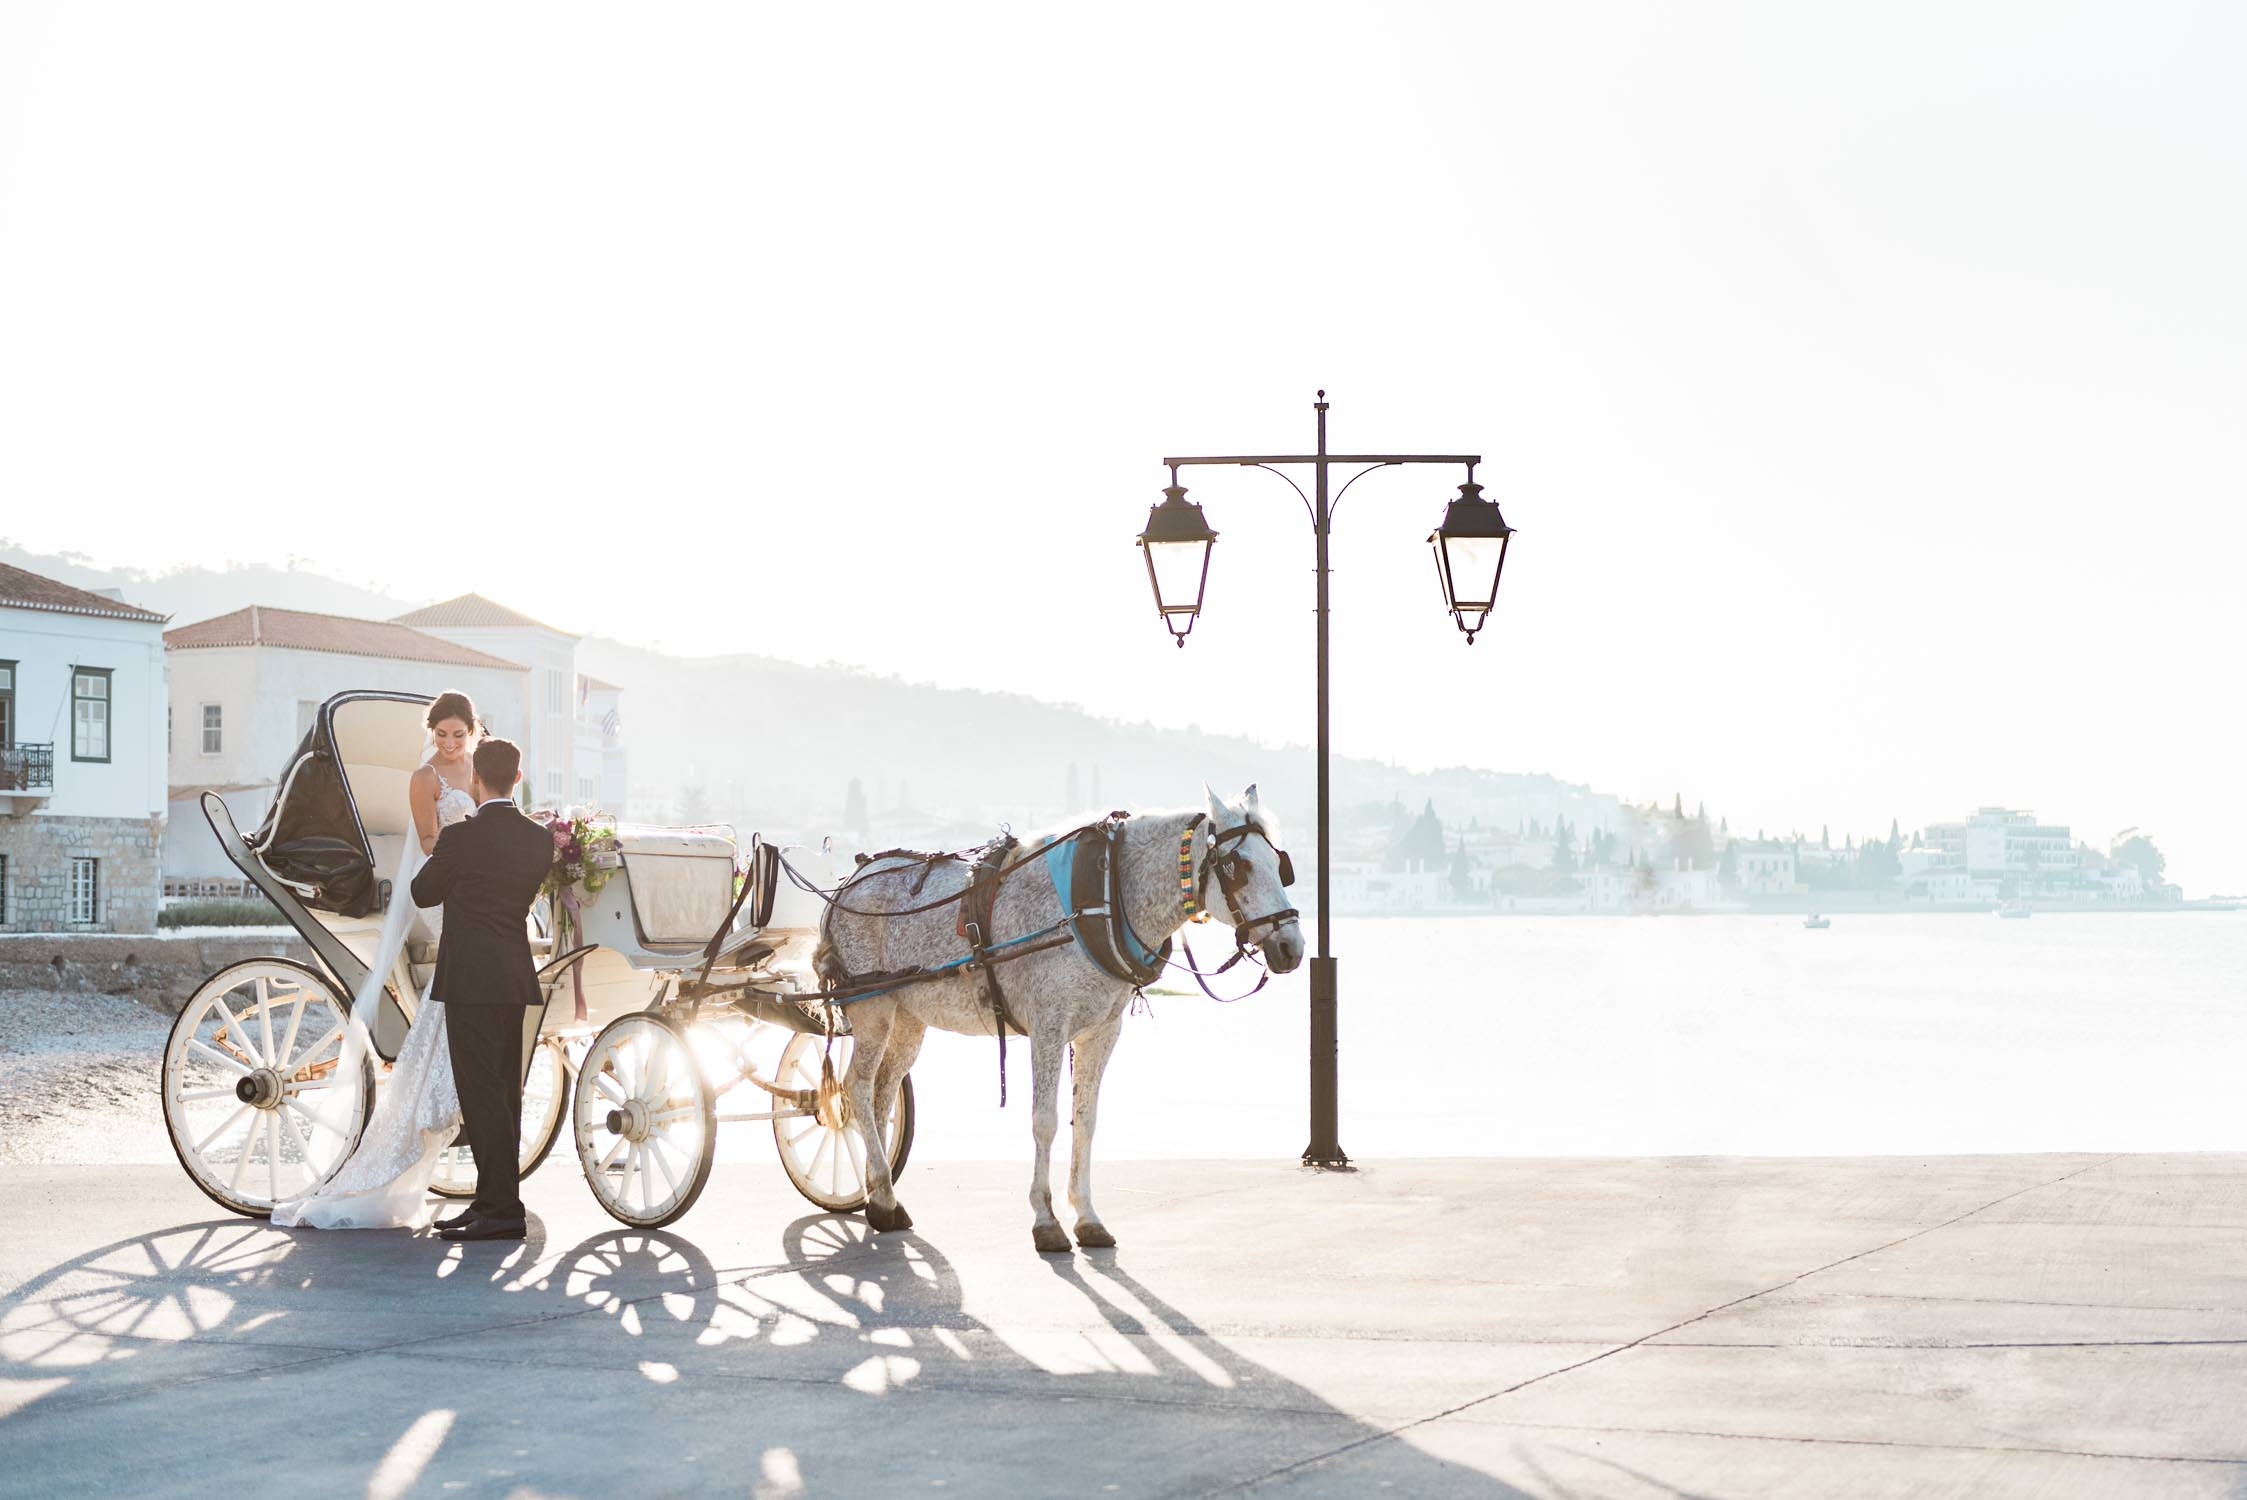 Bride, groom, horse and carriage in front of the Poseidonion Hotel in Spetses during sunset photographed by destination wedding photographer Wit Photography in Greece